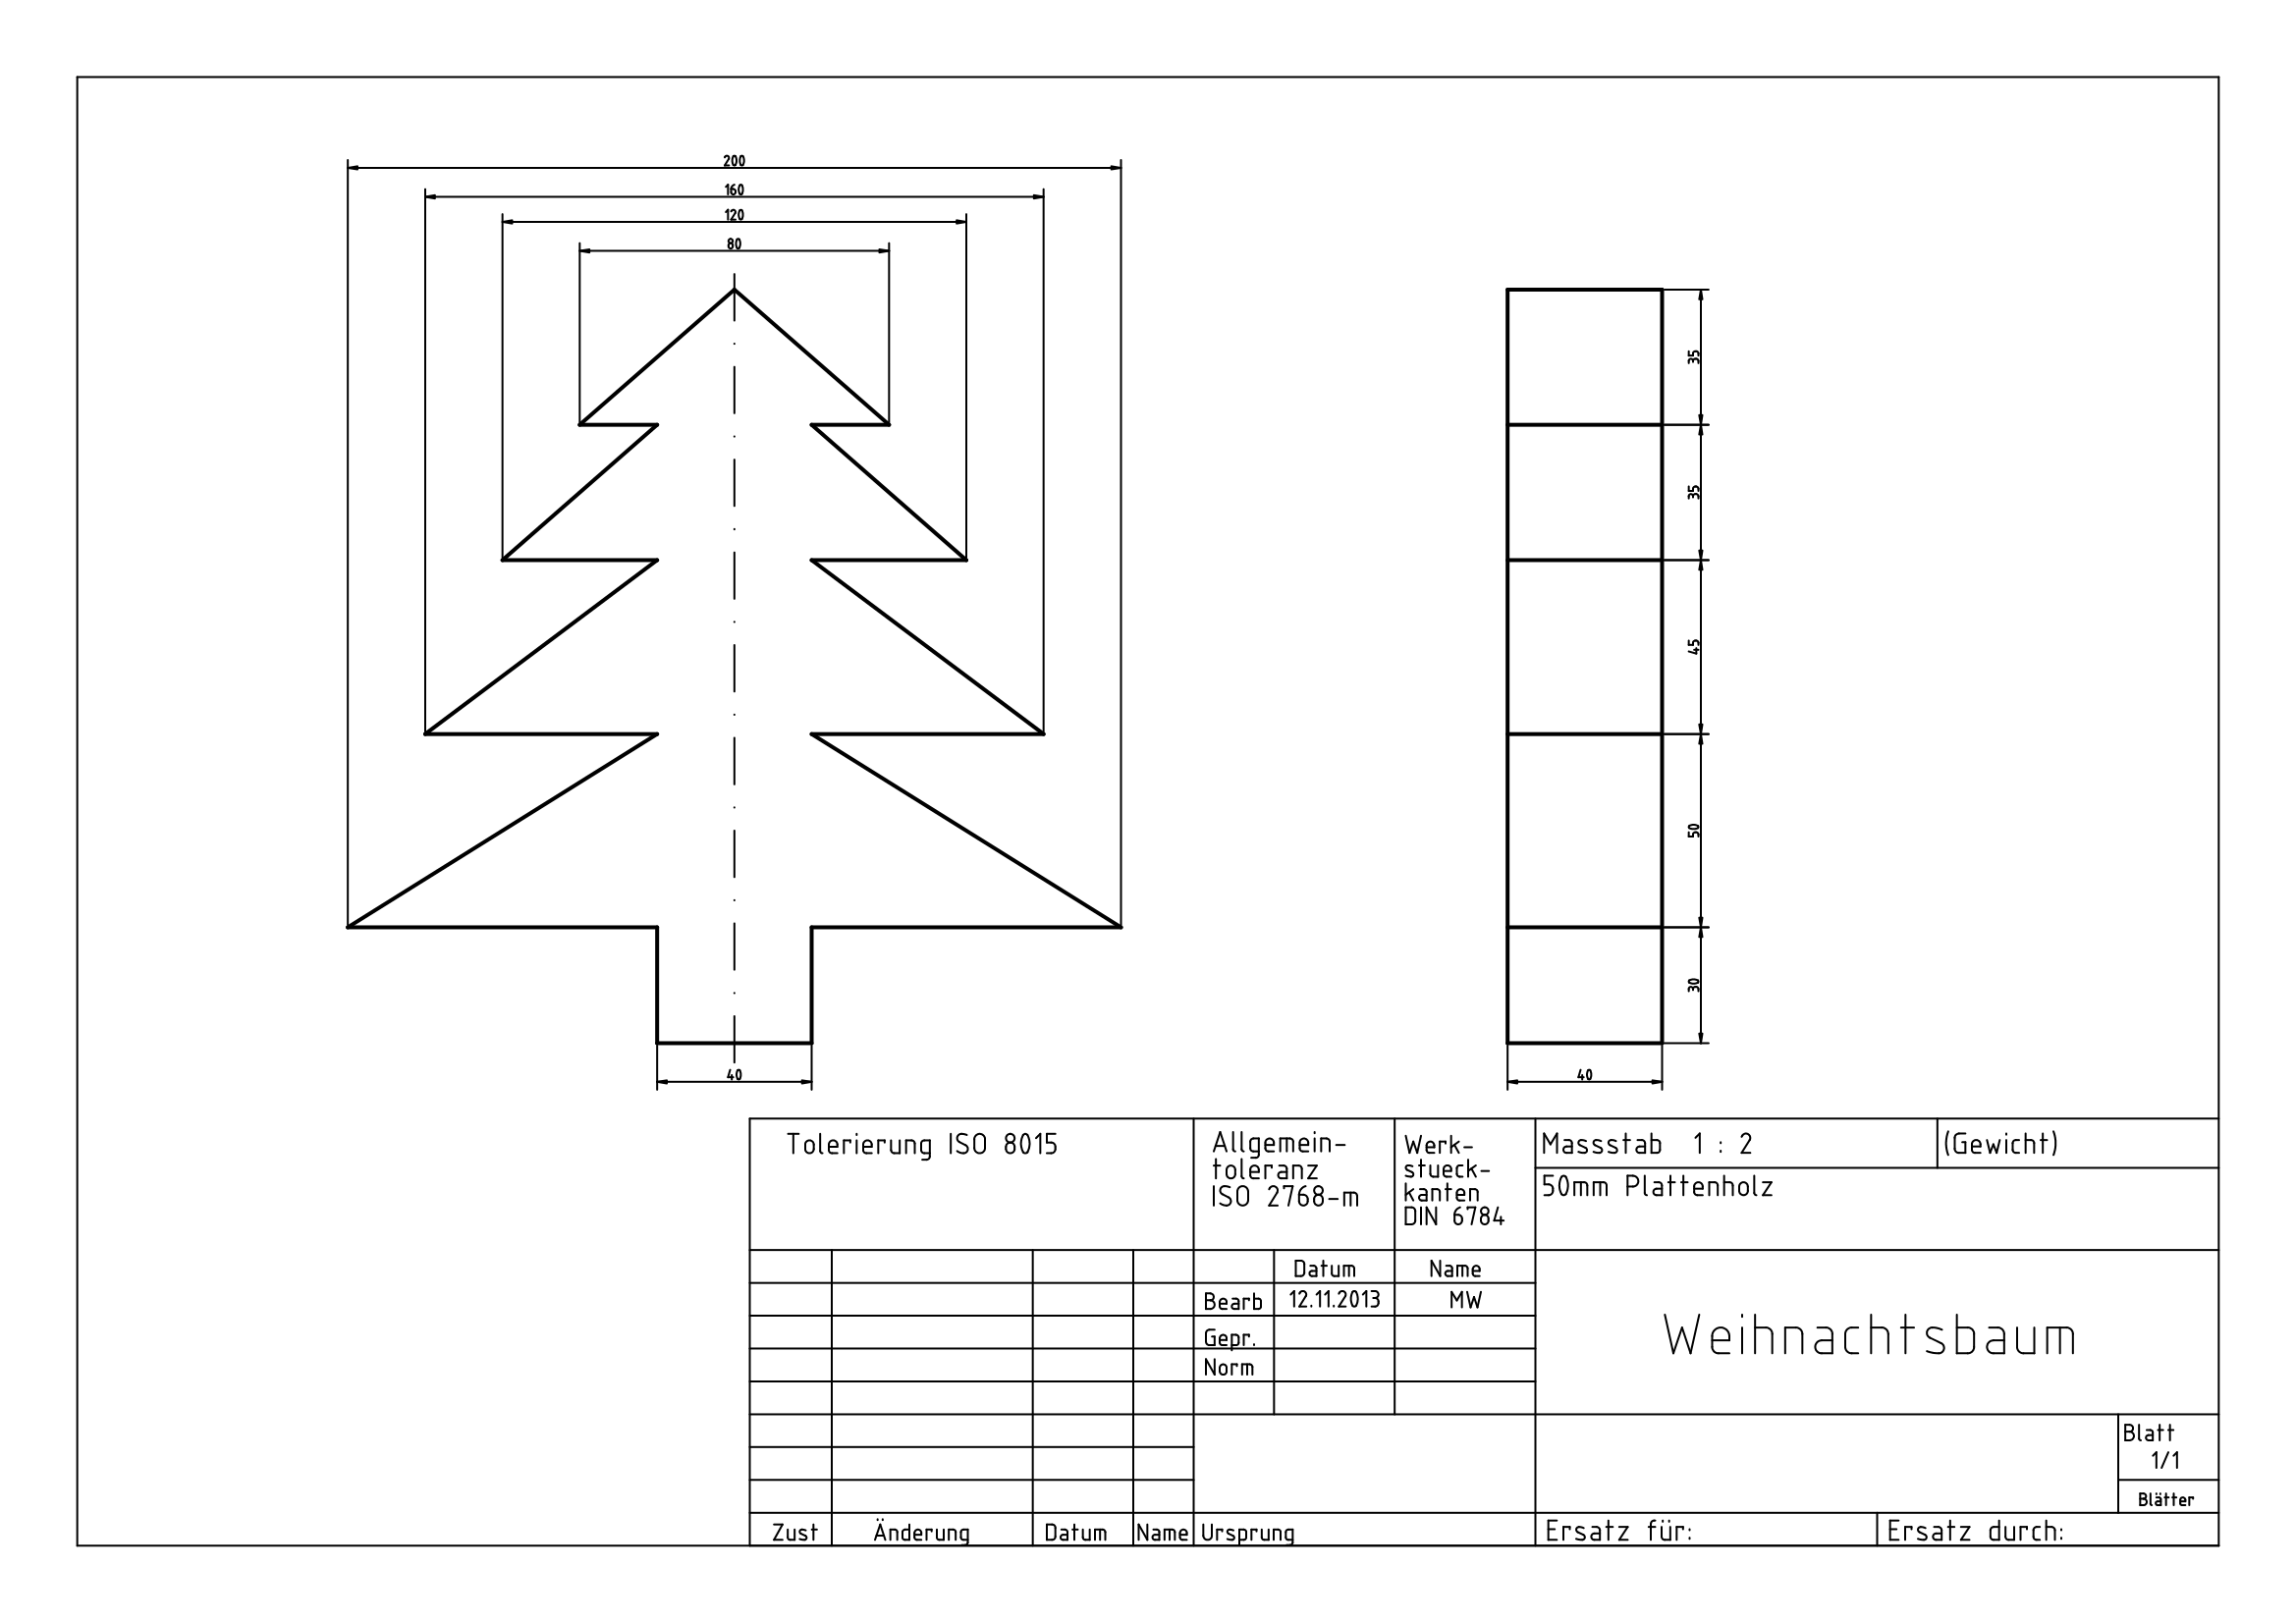 Real Weihnachtsbaum.Feature Request Automatic Scale Of Dimensions Issue 421